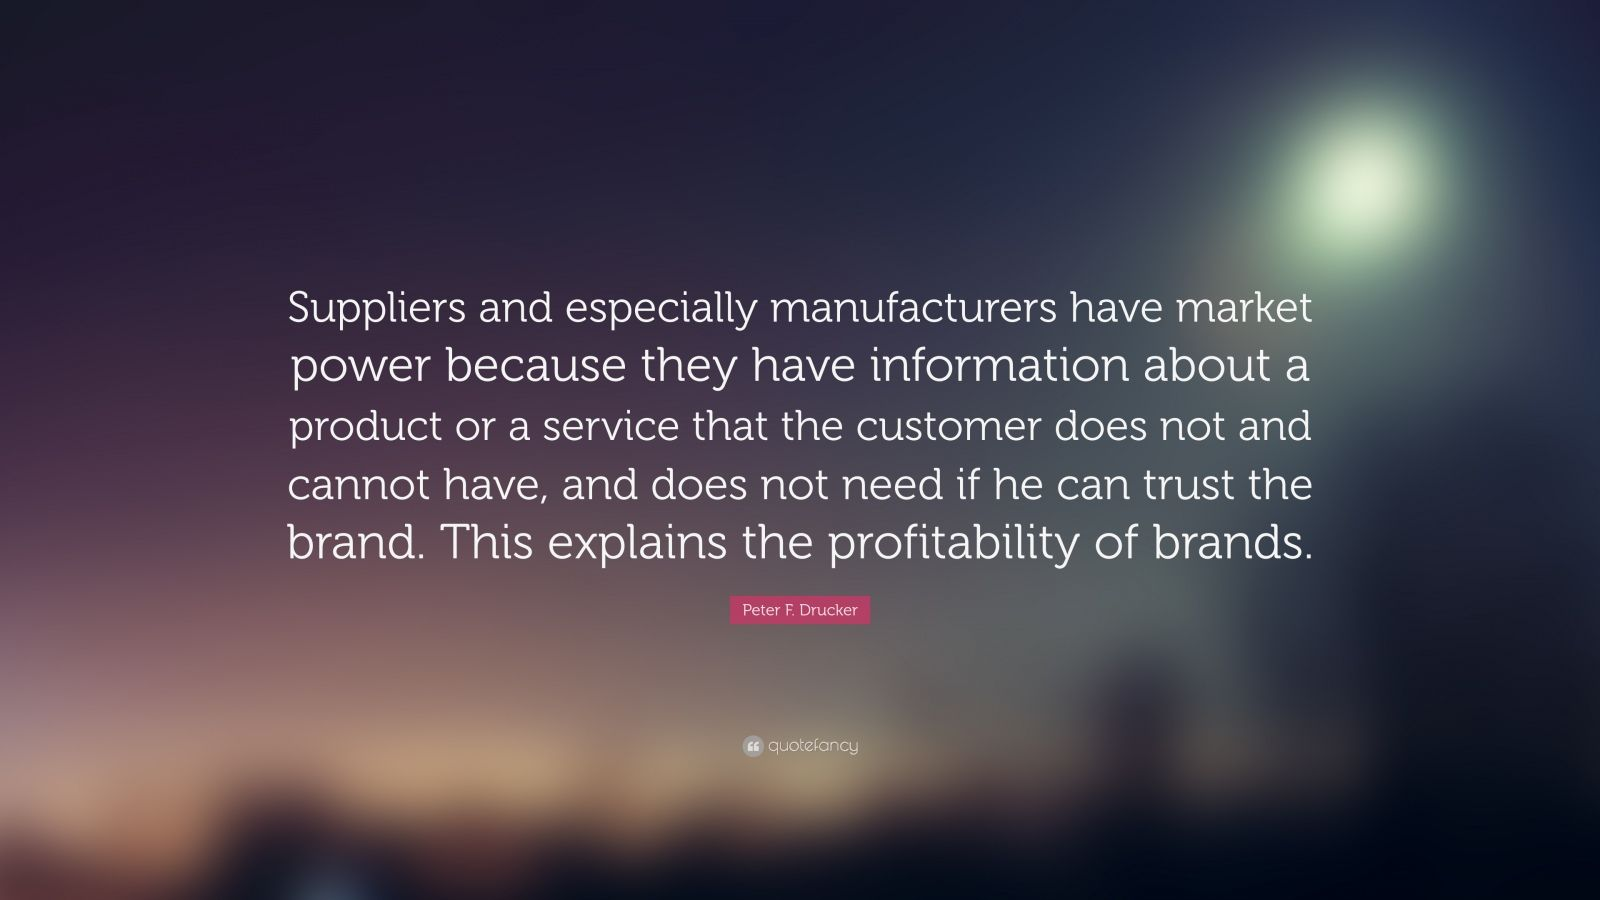 """Peter F. Drucker Quote: """"Suppliers and especially manufacturers have market power because they have information about a product or a service that the customer does not and cannot have, and does not need if he can trust the brand. This explains the profitability of brands."""""""